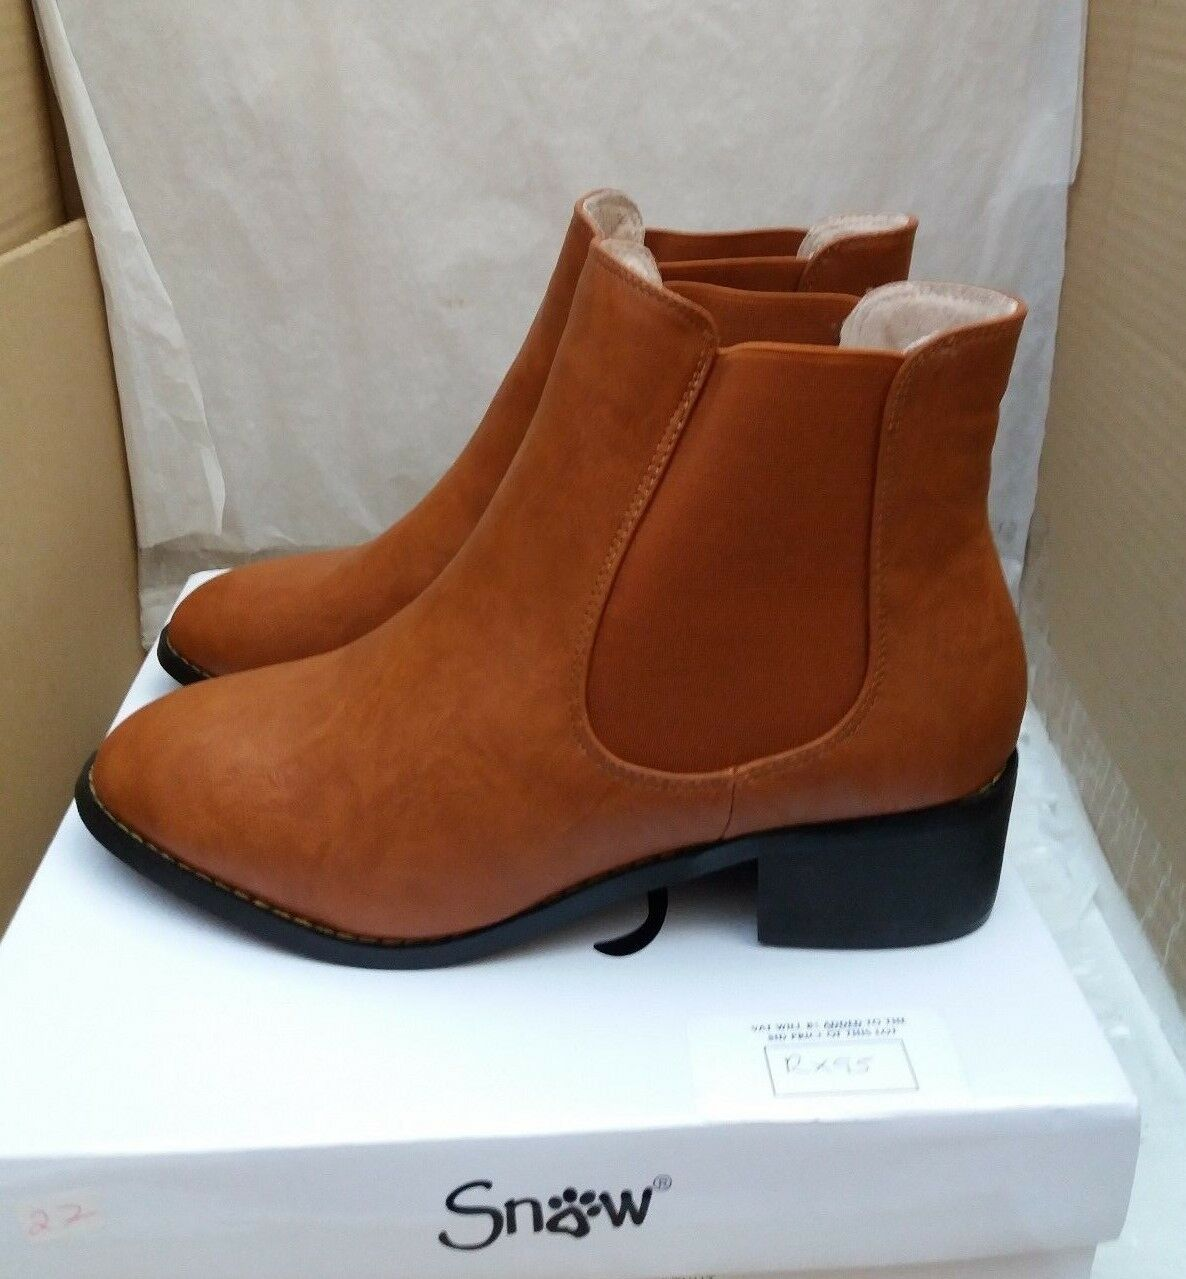 Snow Paw Ladies Chestnut Leather Chelsea Ankle Boots- 5945 - UK 7